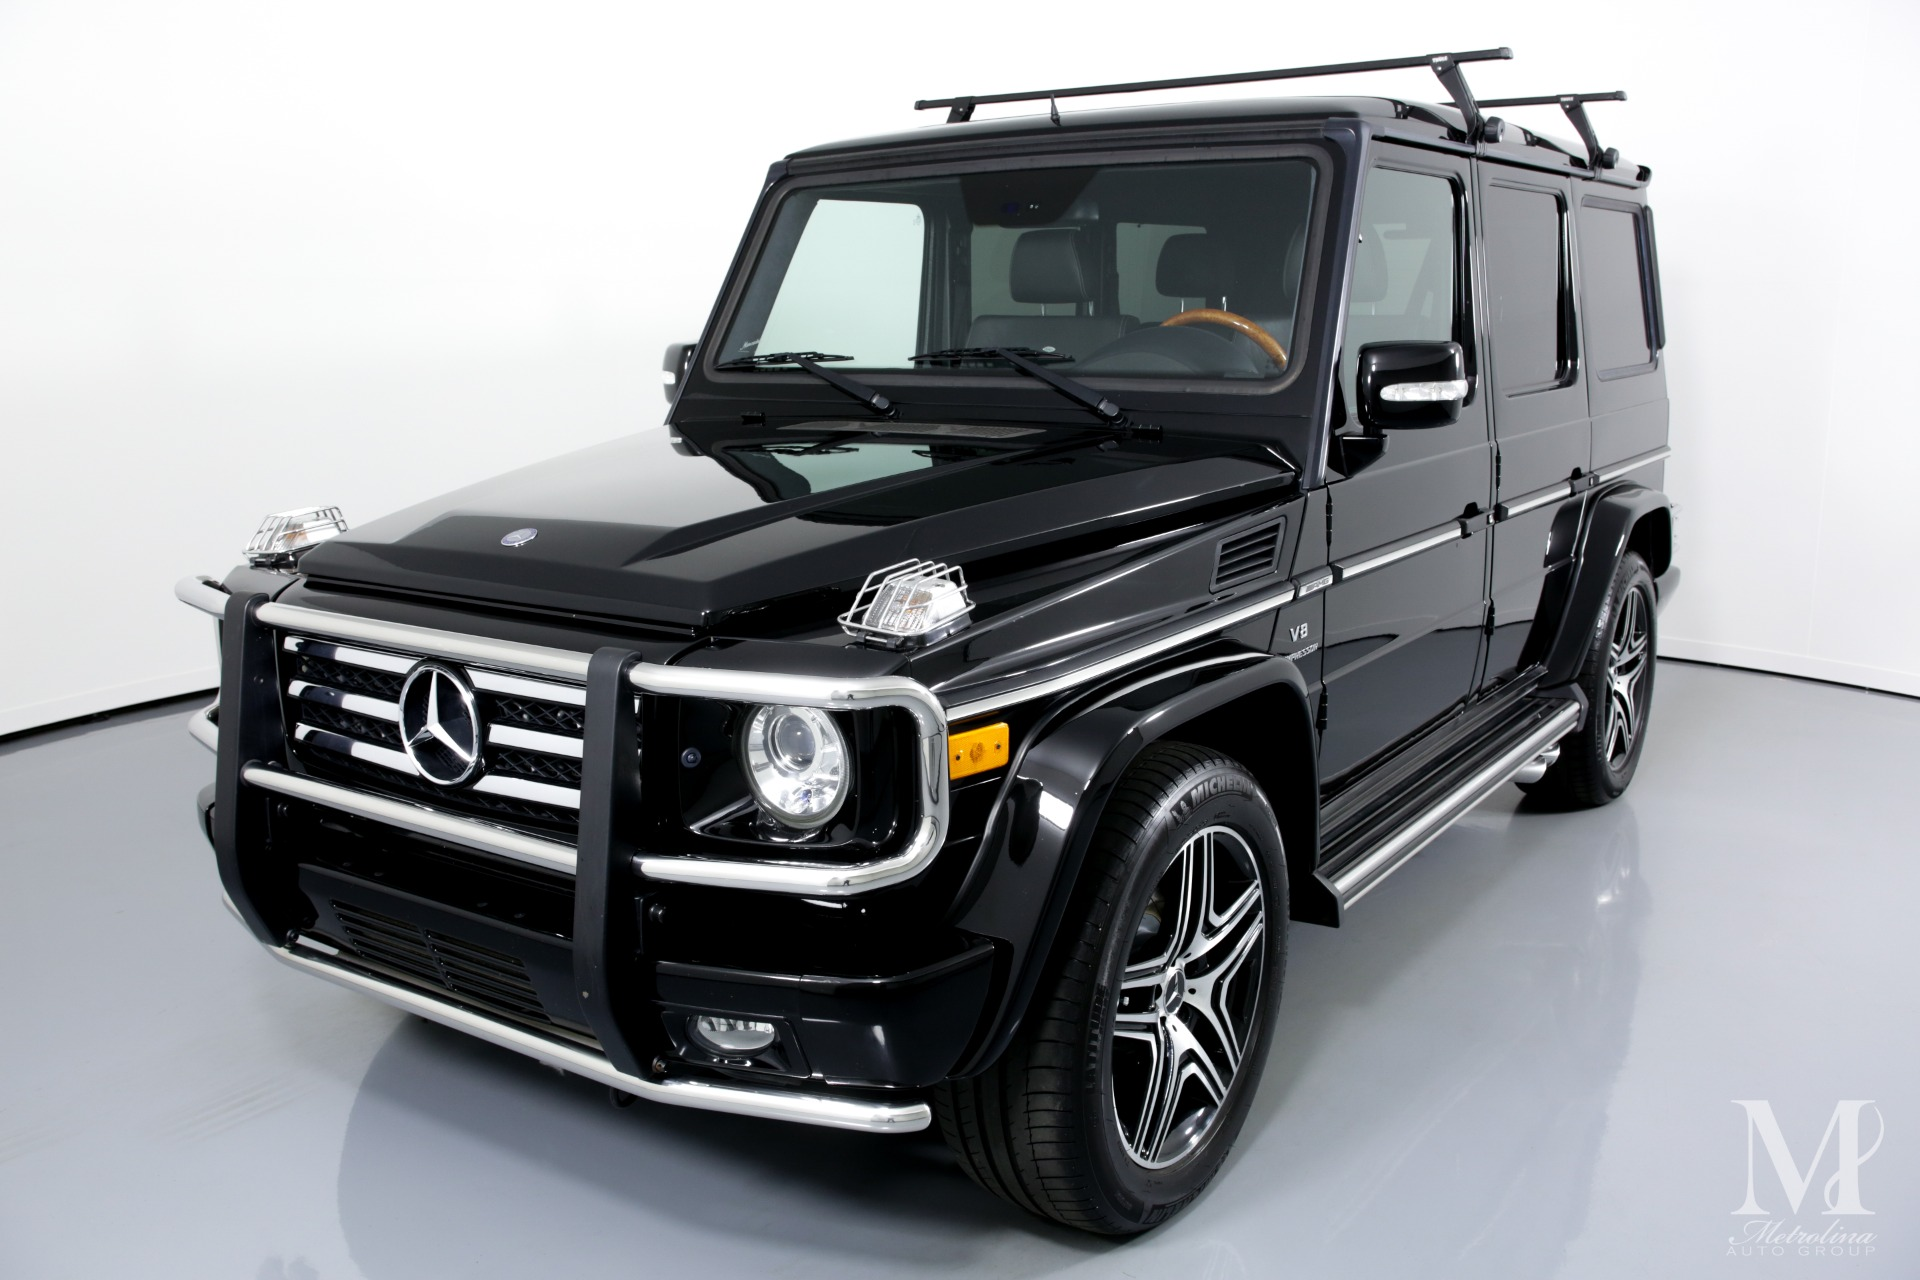 Used 2010 Mercedes-Benz G-Class G 55 AMG AWD 4MATIC 4dr SUV for sale $49,996 at Metrolina Auto Group in Charlotte NC 28217 - 4